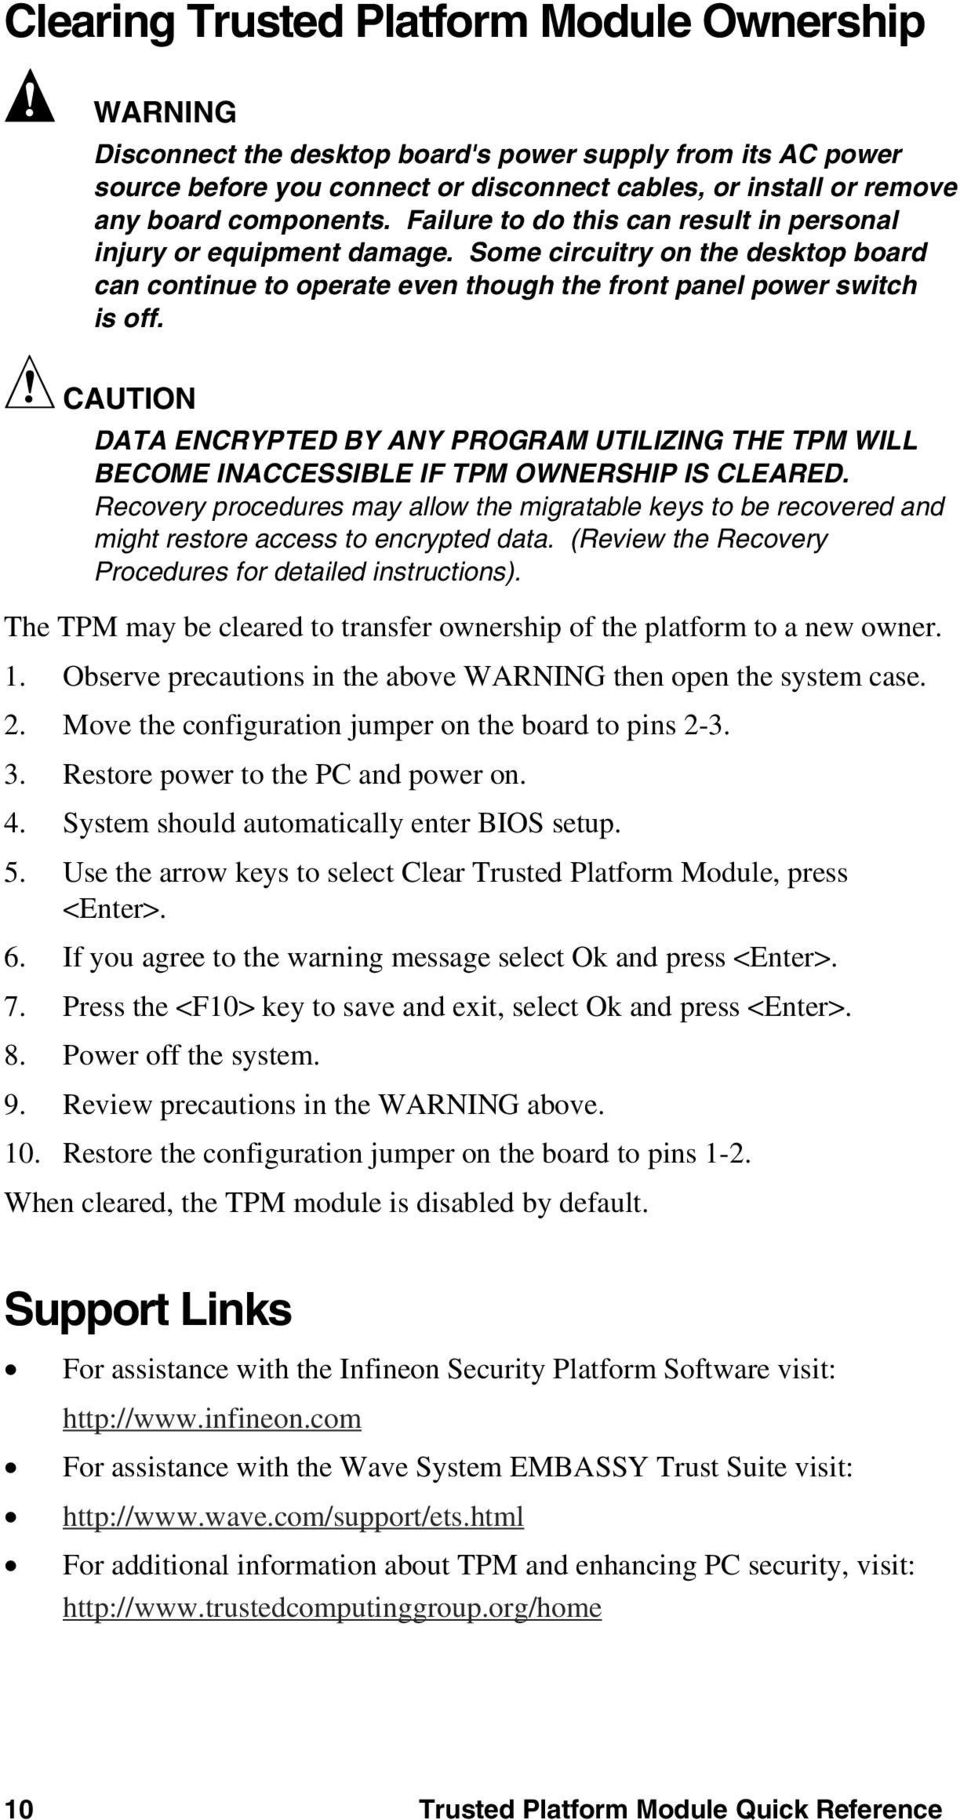 CAUTION DATA ENCRYPTED BY ANY PROGRAM UTILIZING THE TPM WILL BECOME INACCESSIBLE IF TPM OWNERSHIP IS CLEARED.